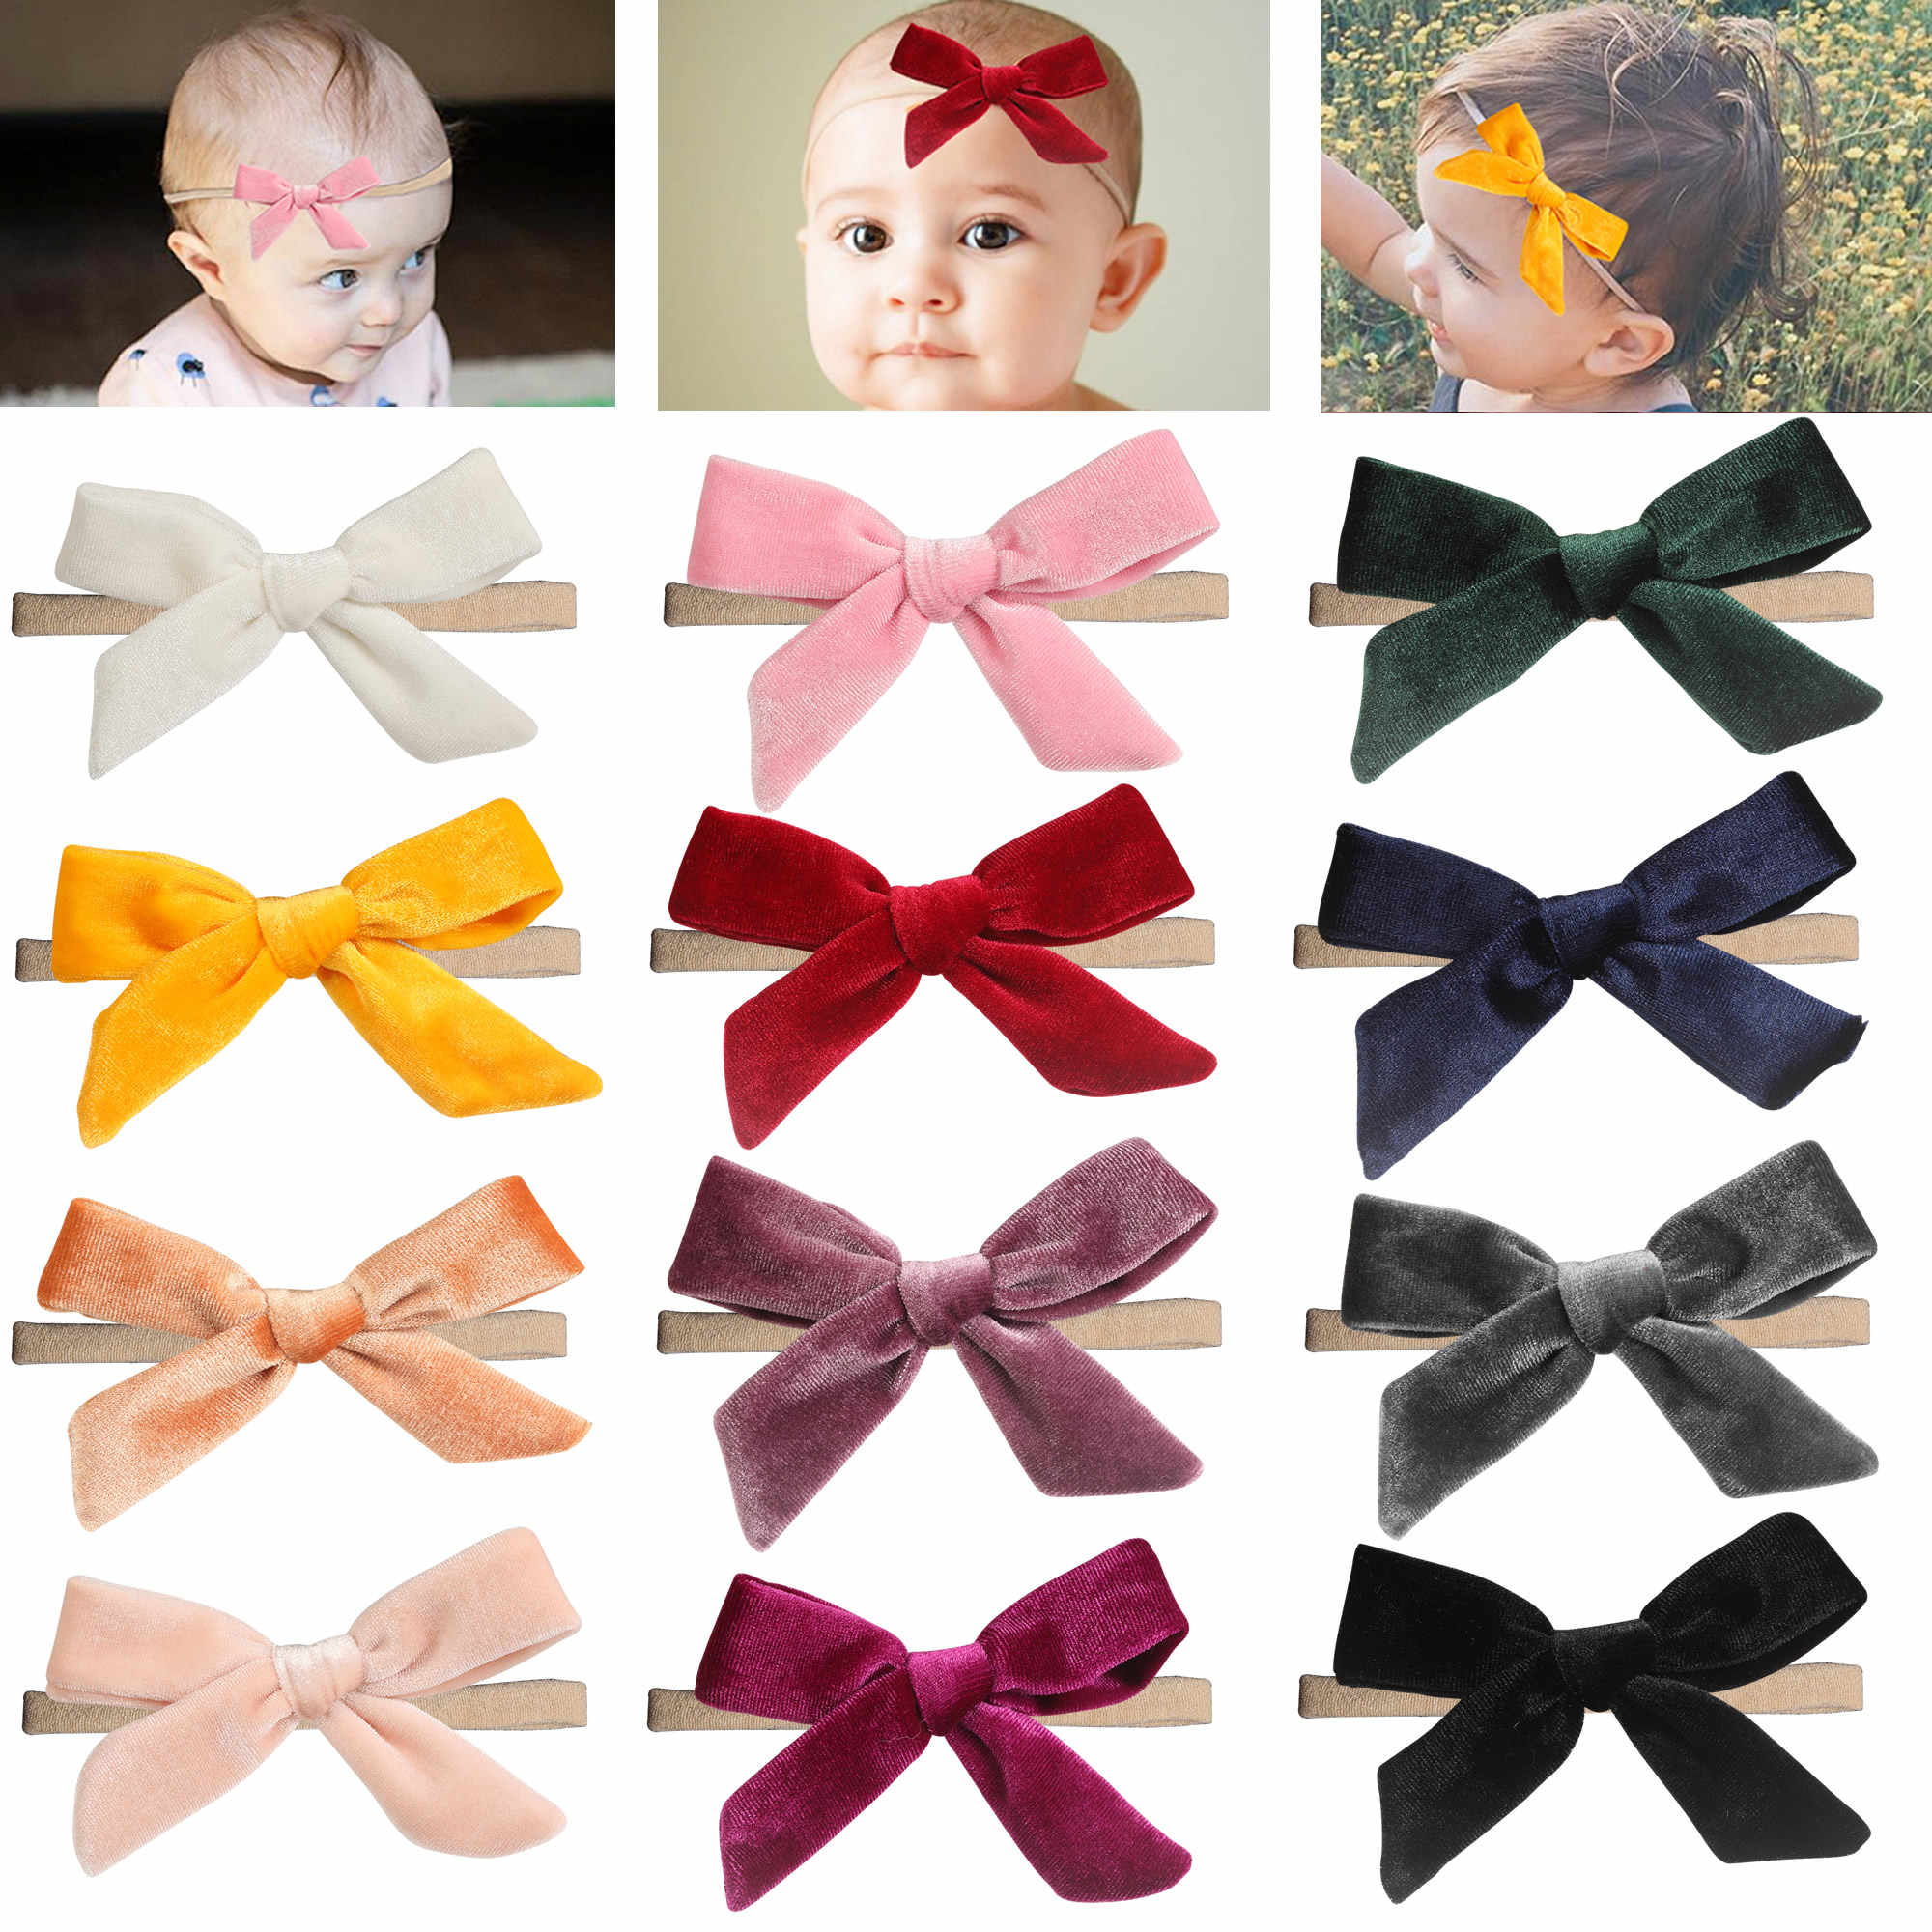 inSowni 2019 New 1pc Super Stretchy Nylon Solid Velvet Bow Headbands Hairbands Hair Accessories Ties for Baby Girls Toddlers Kid